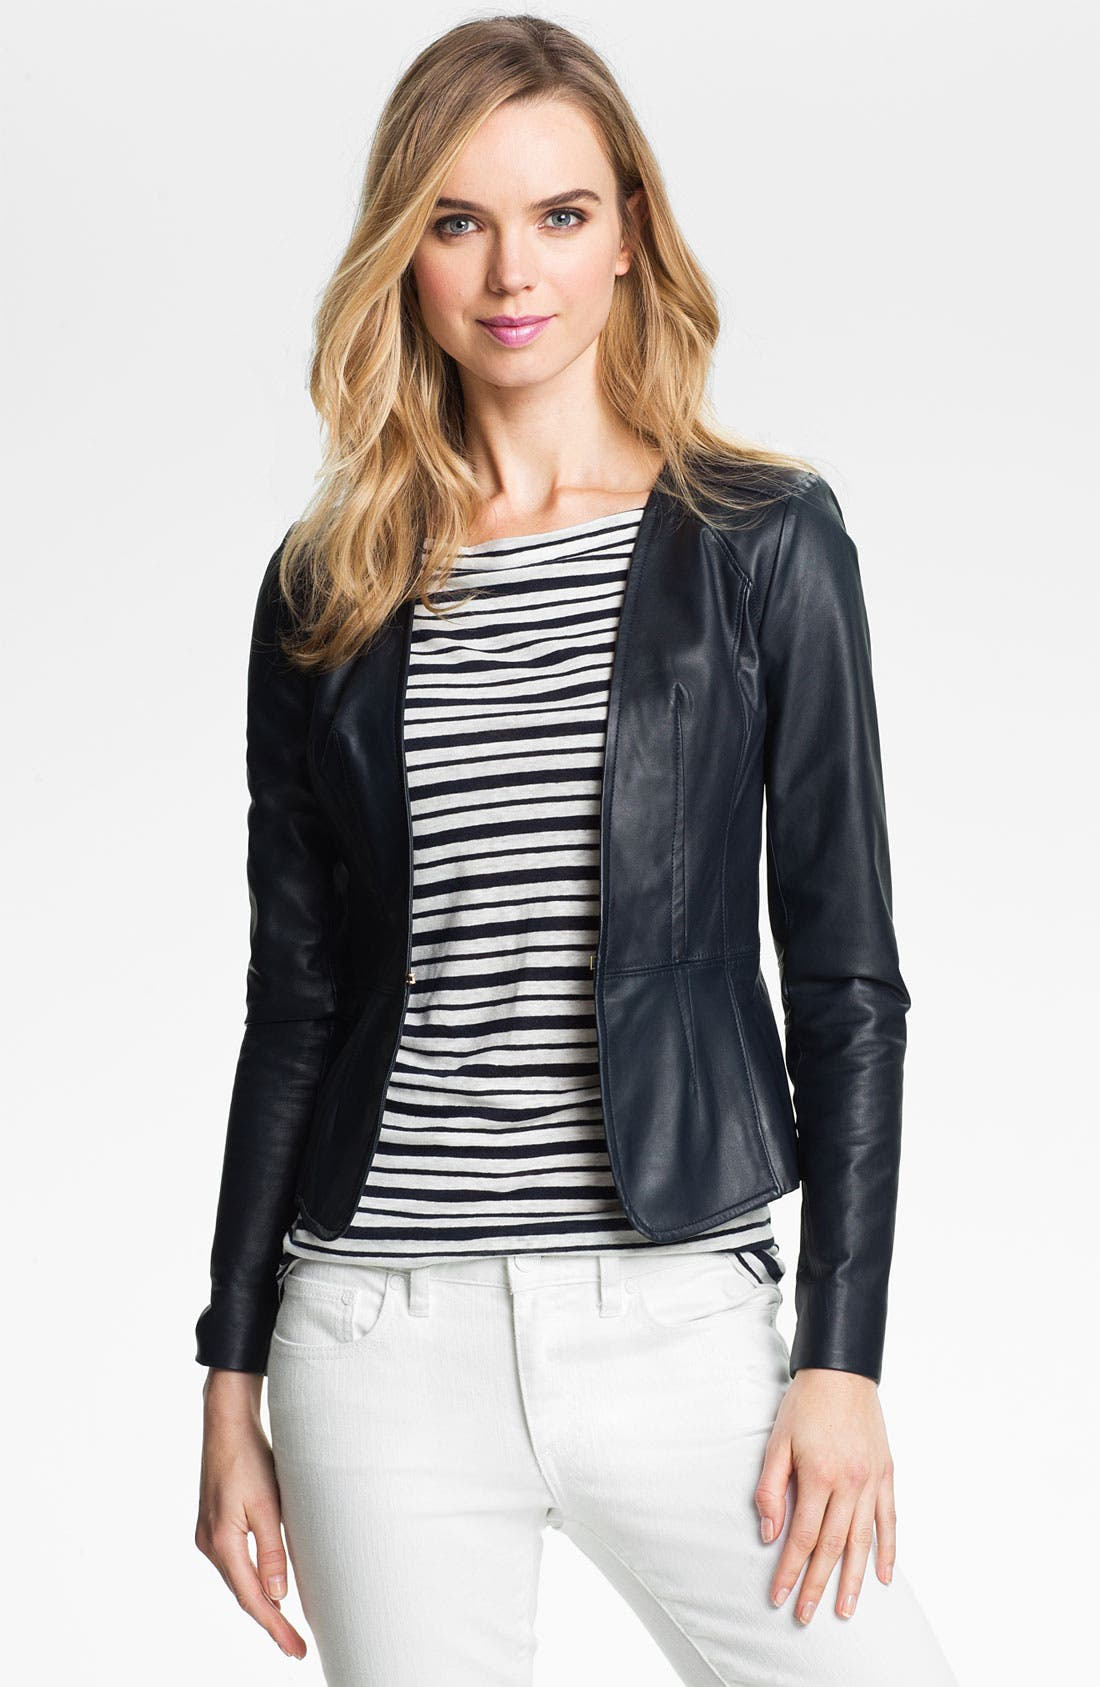 Alternate Image 1 Selected - Tory Burch 'Abby' Leather Jacket